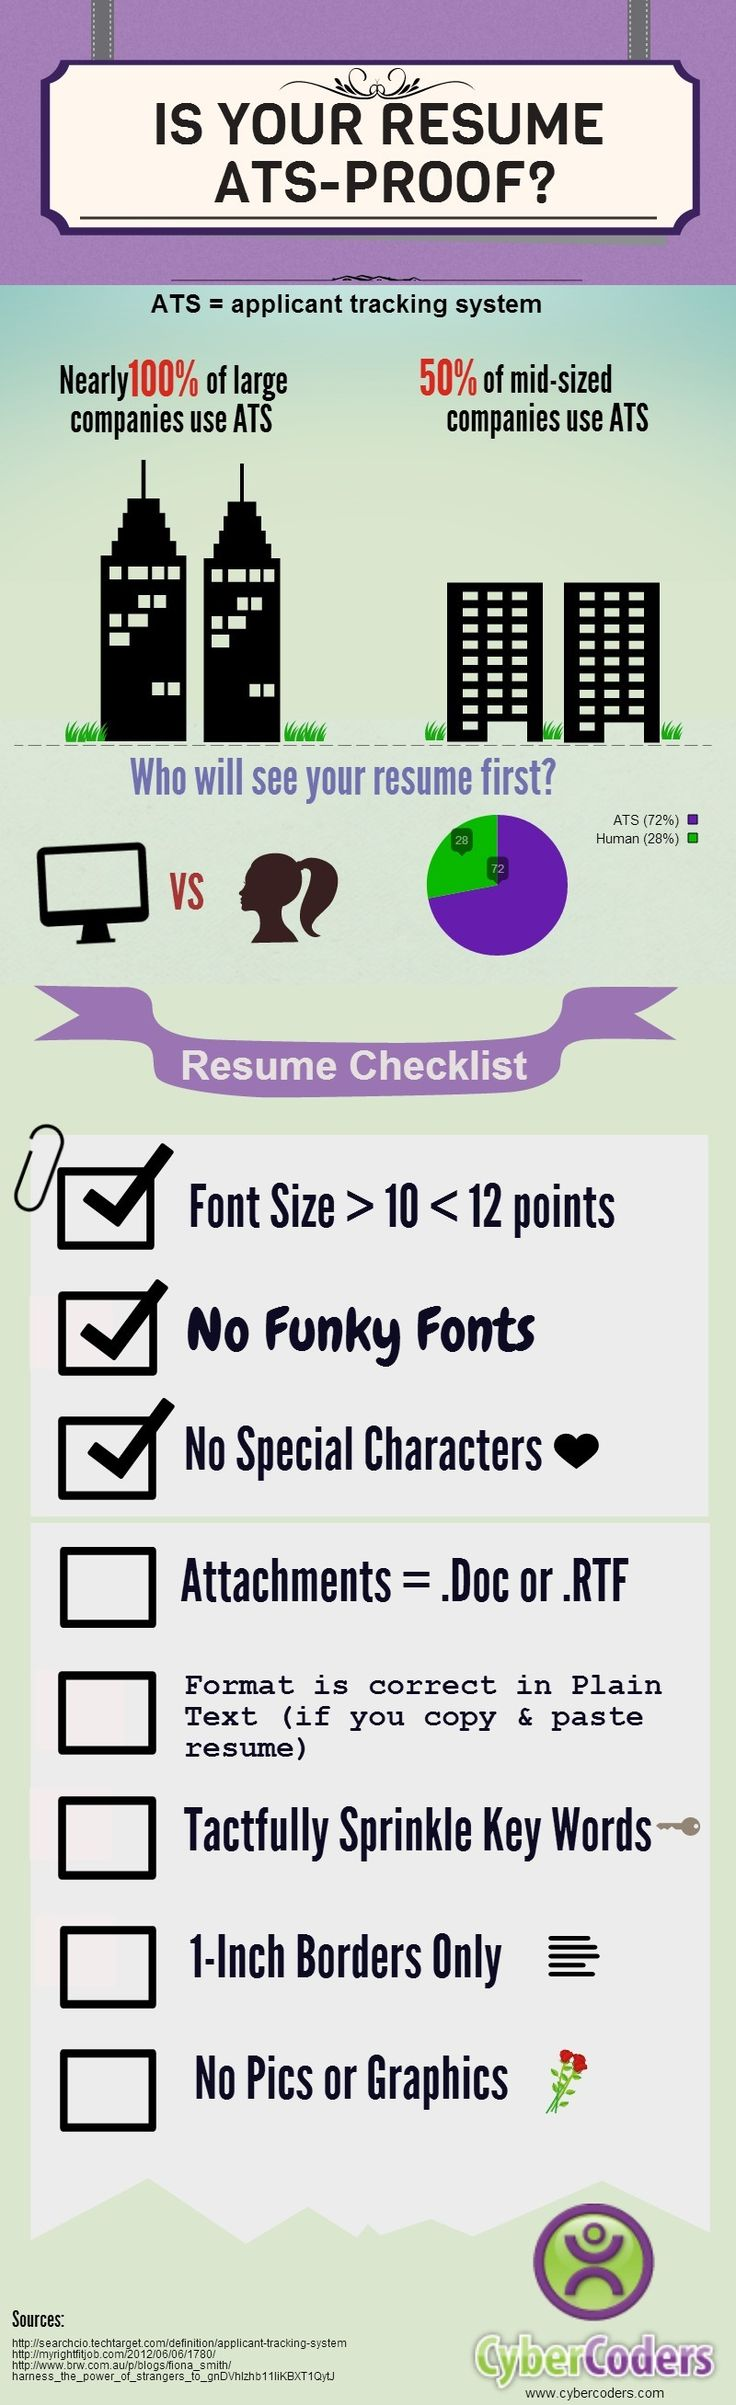 Famous 1 Page Resume Format Tall 1 Week Schedule Template Clean 10 Tips For A Great Resume 100 Chart Template Youthful 100 Dollar Bill Template White100 Resume Words 109 Best Images About Resume Tips And Tricks On Pinterest | Entry ..